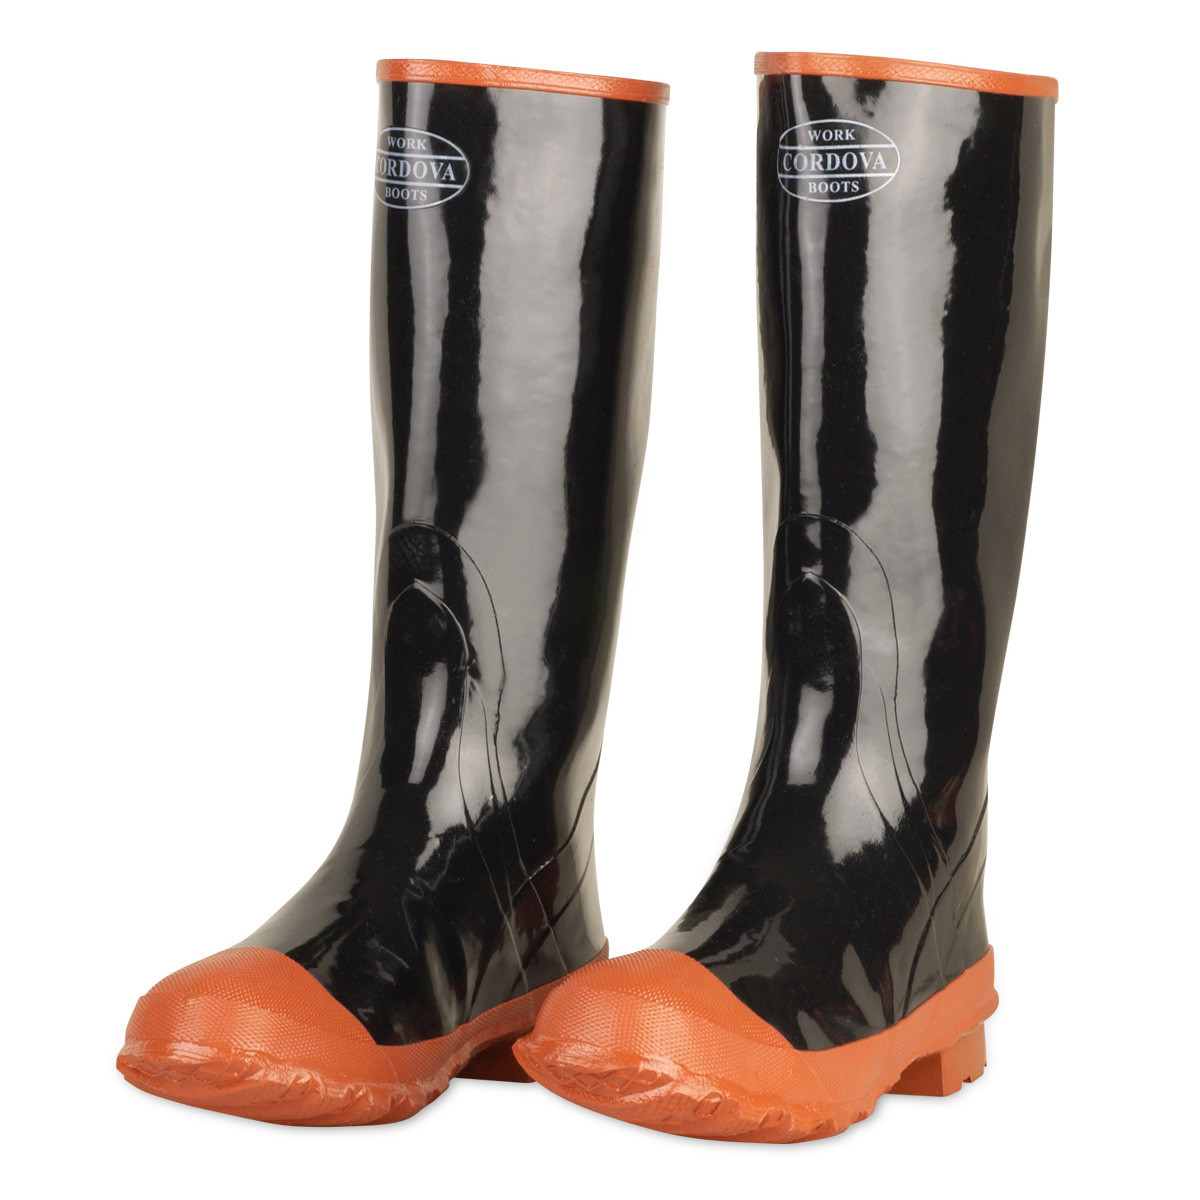 san francisco ce75e 72446 Rubber Boots, Plain Toe, Cotton Lined, Black w/Brick Red Ribbed Soles,  16-Inch Length (Pair)